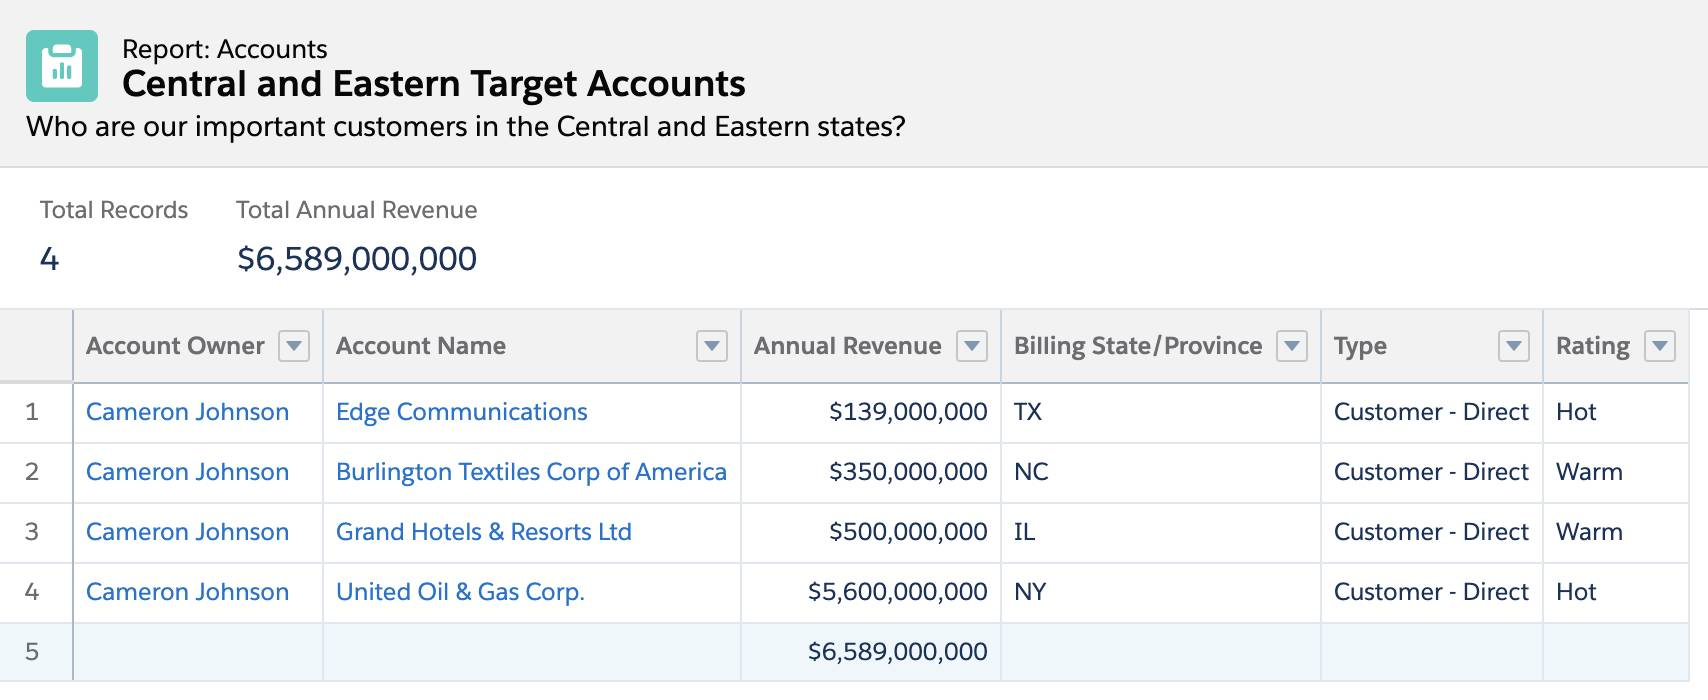 Central Eastern Target Accounts report